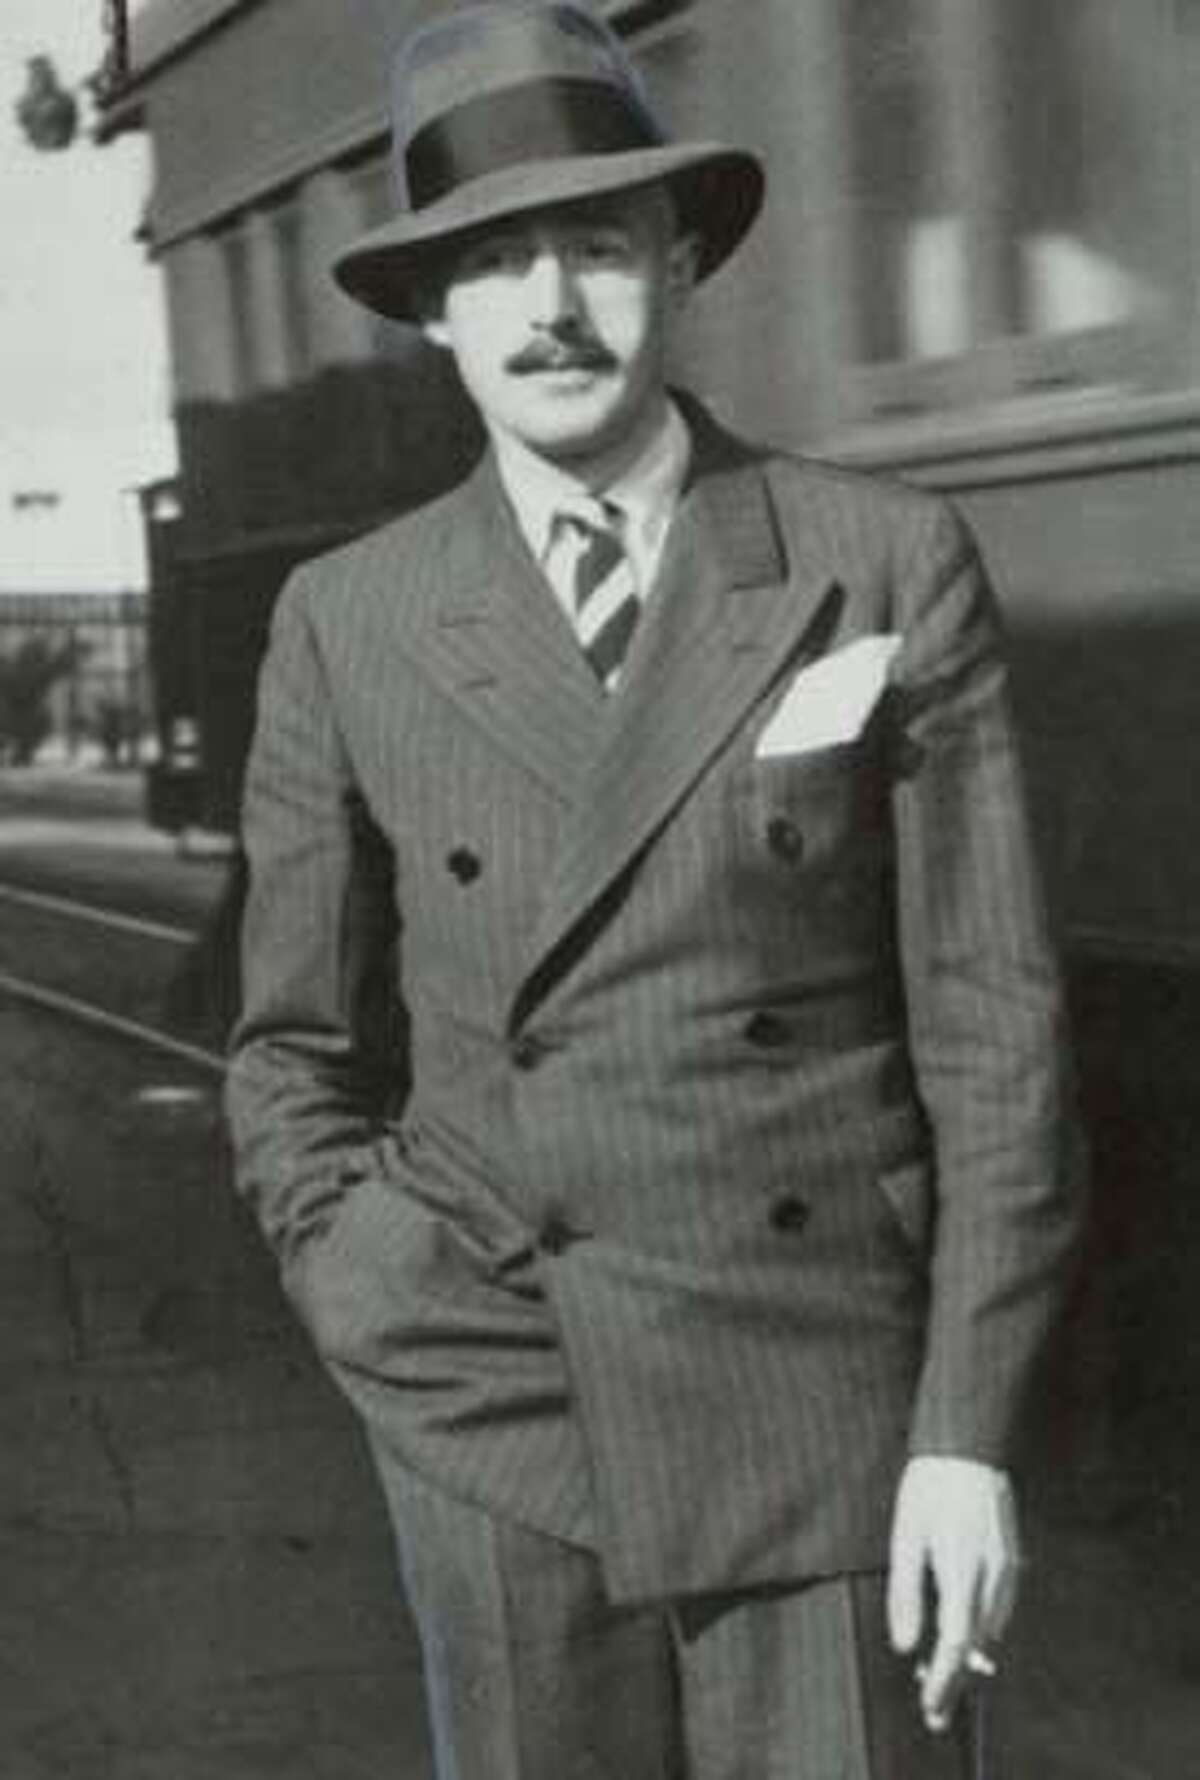 dashiell hammett circa 1940 Ran on: 02-06-2005 Top: George Raft, who turned down the Sam Spade role, and Geraldine Fitzgerald, who snubbed the Brigid O'Shaughnessy part.